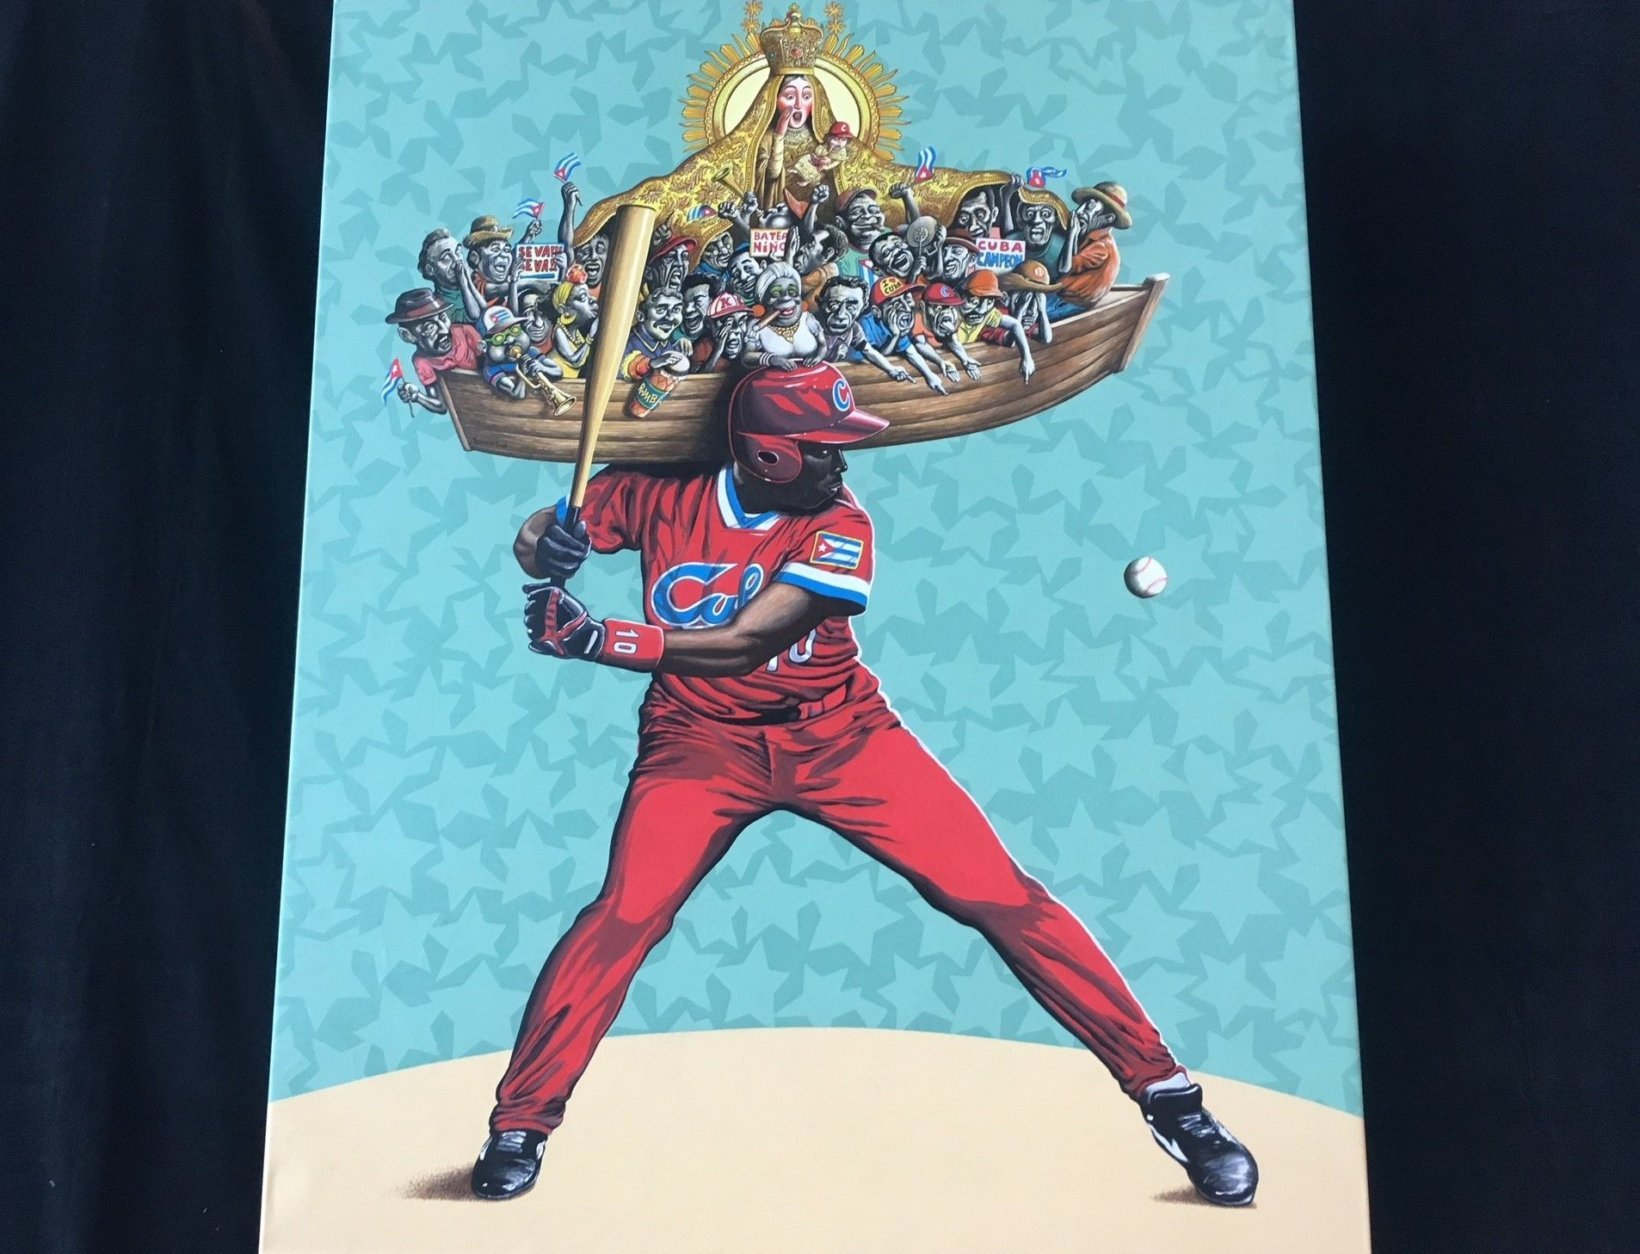 """The """"Cuban Slugger"""" exhibit from artist Reynario Tamayo is on display at Arena Stage through Sunday, July 29. (WTOP/Noah Frank)"""